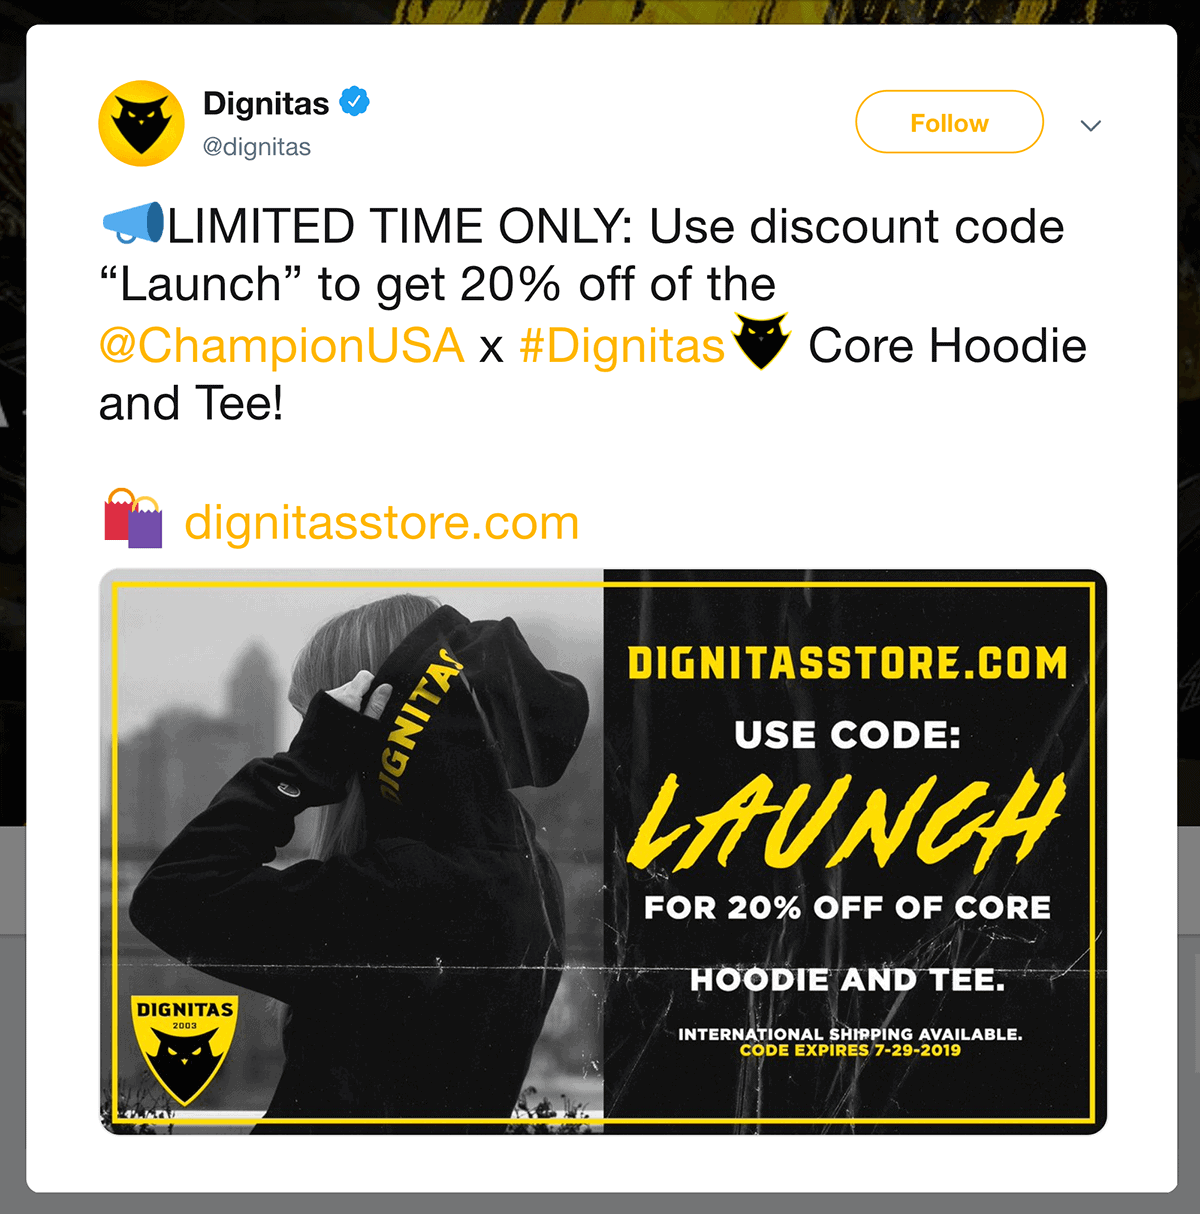 Dignitas limited time offer